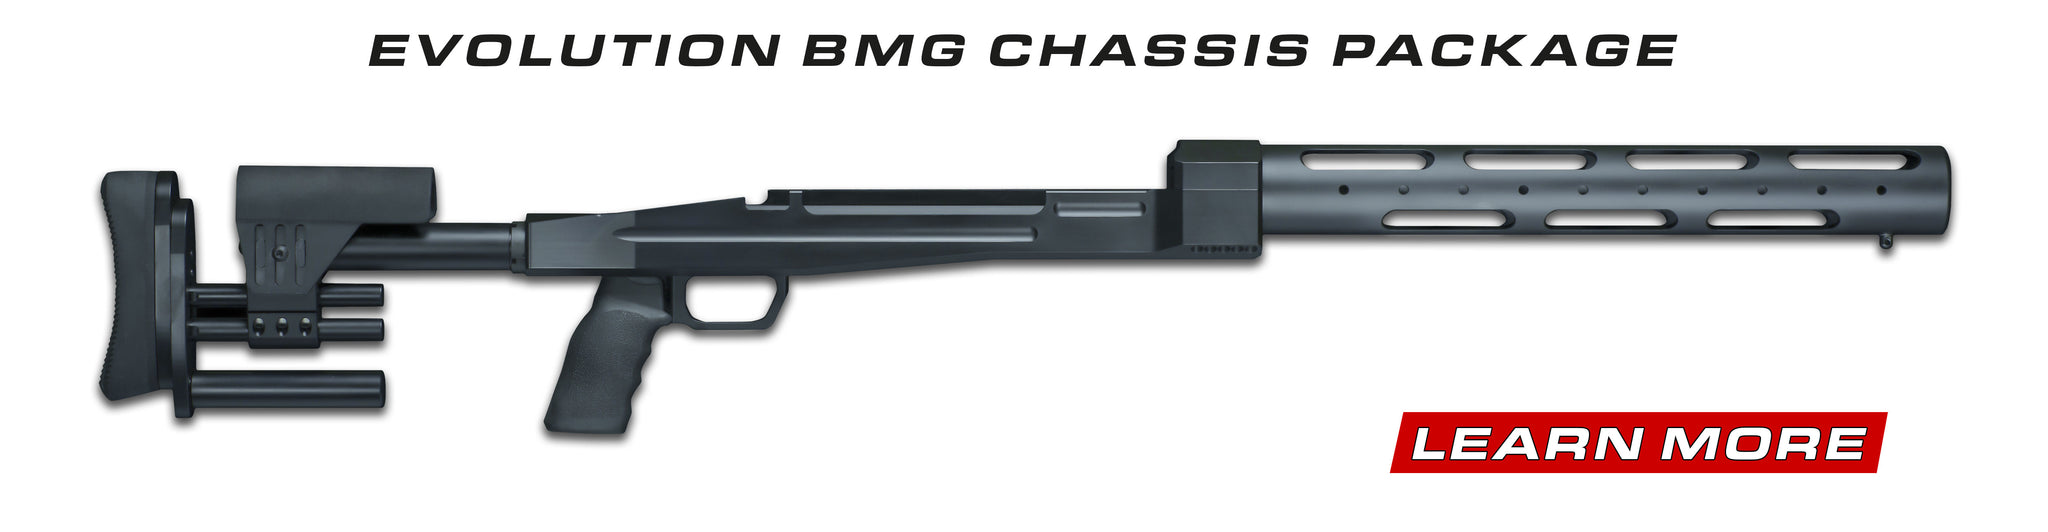 XLR Industries Evolution BMG Chassis